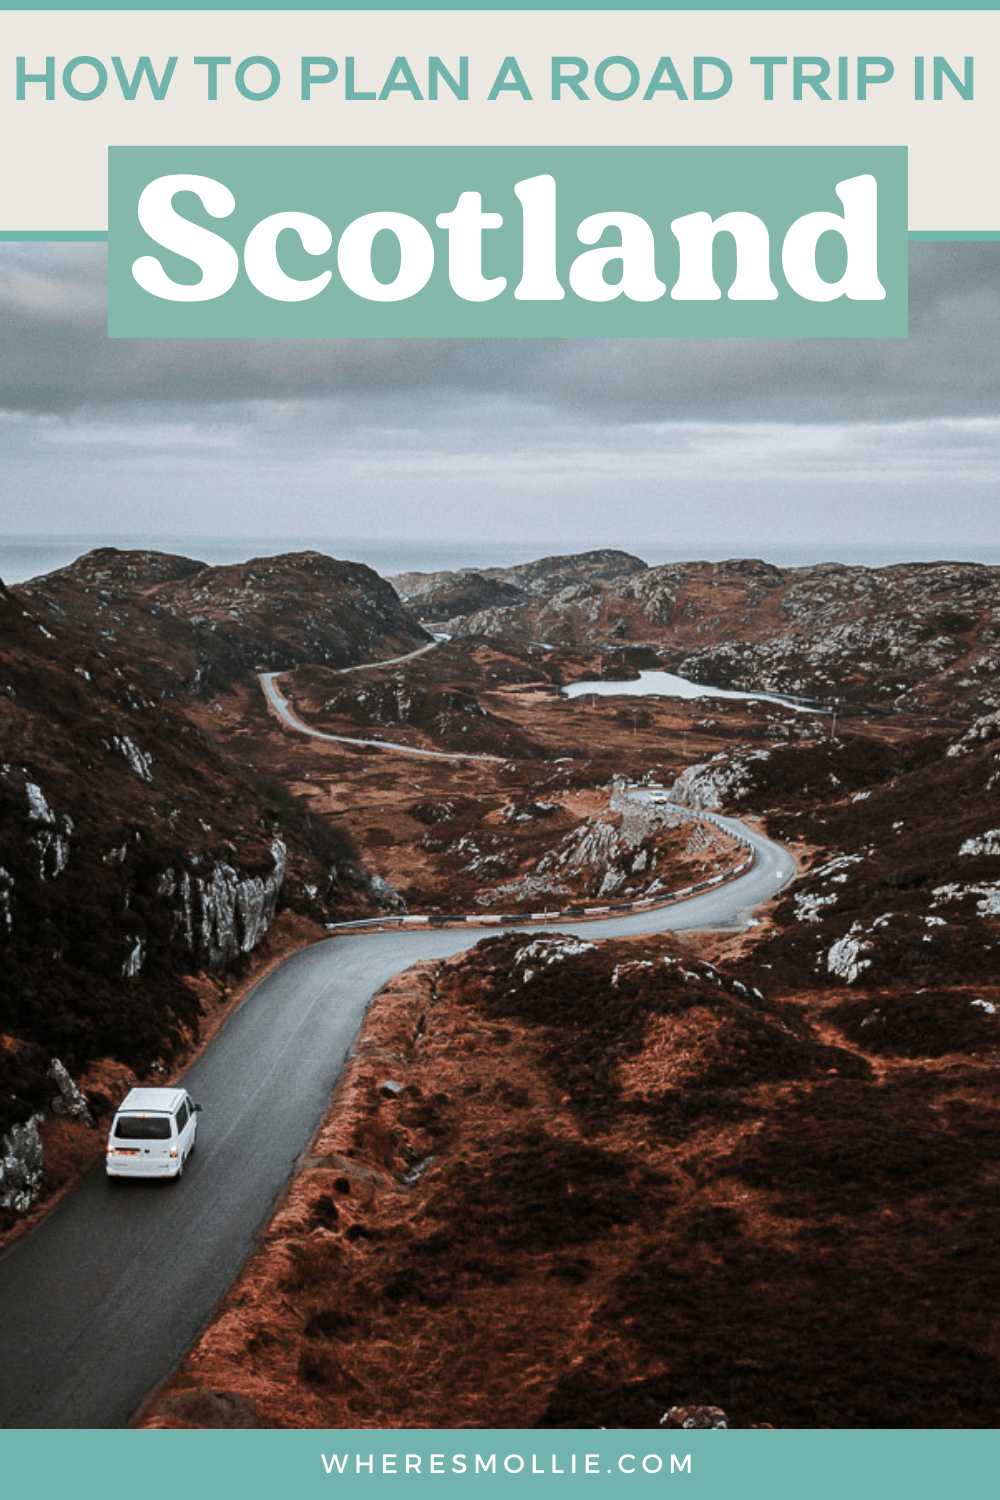 How to plan a road trip in Scotland ft. the best routes